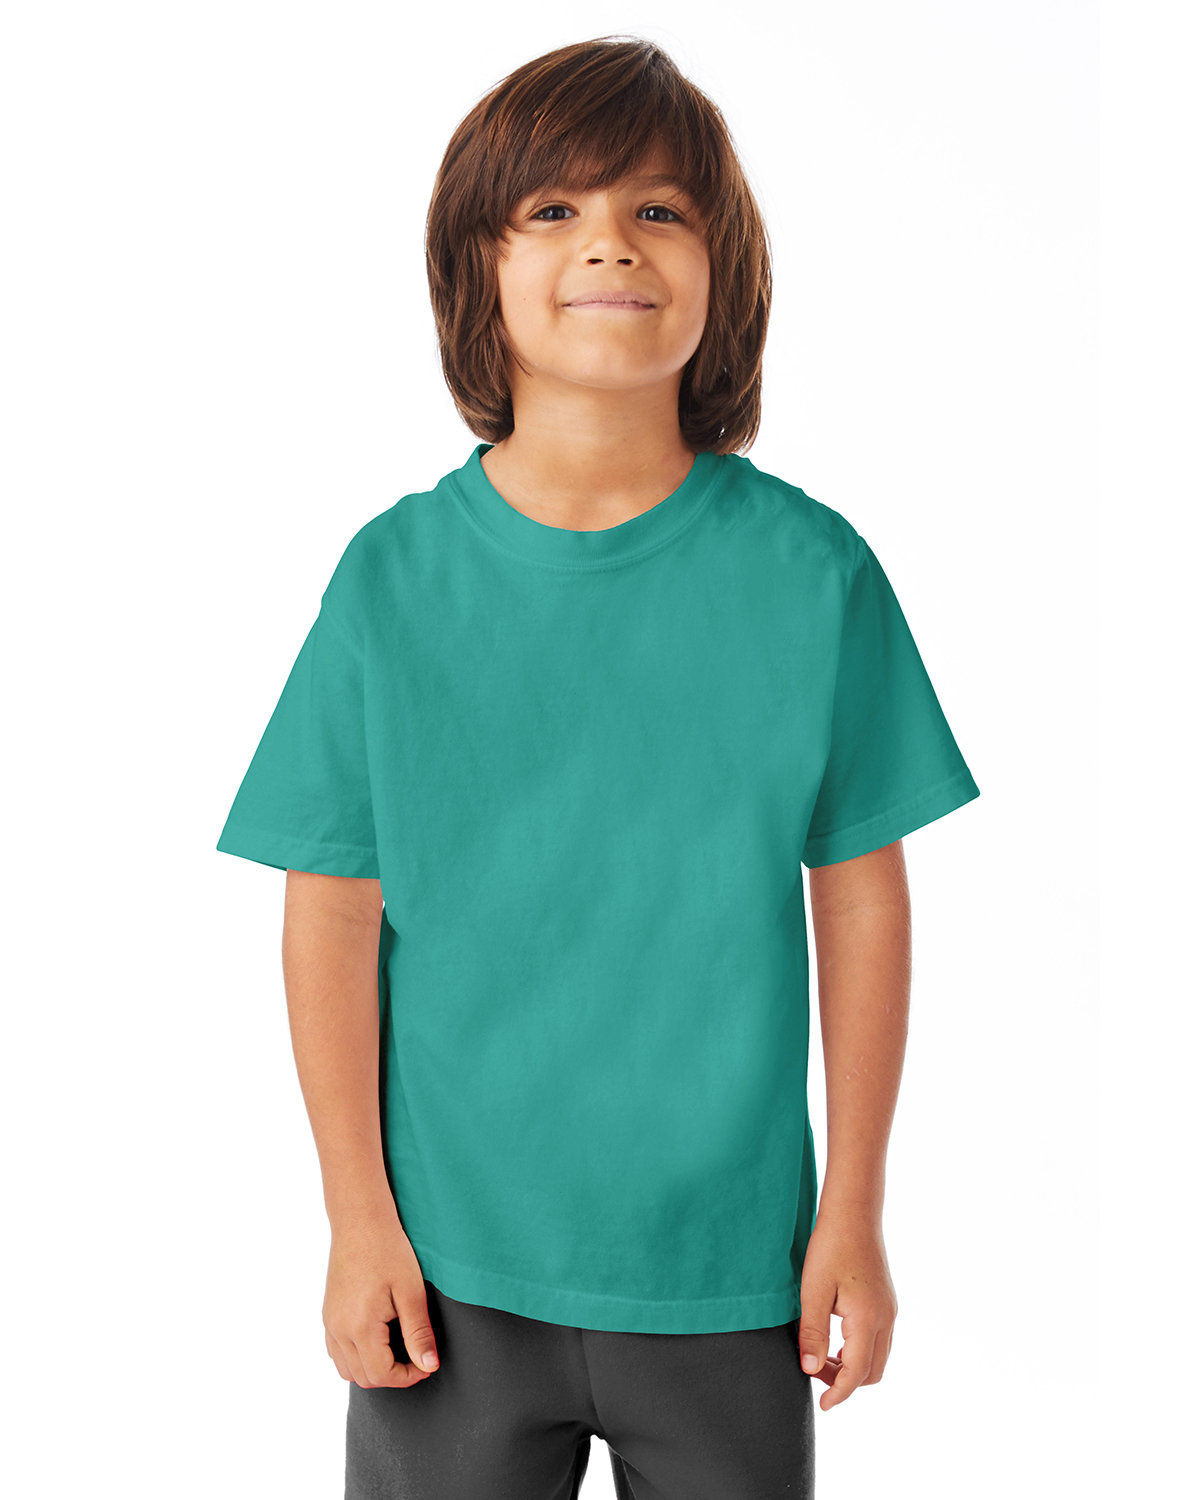 ComfortWash by Hanes Youth Garment-Dyed T-Shirt SPANISH MOSS